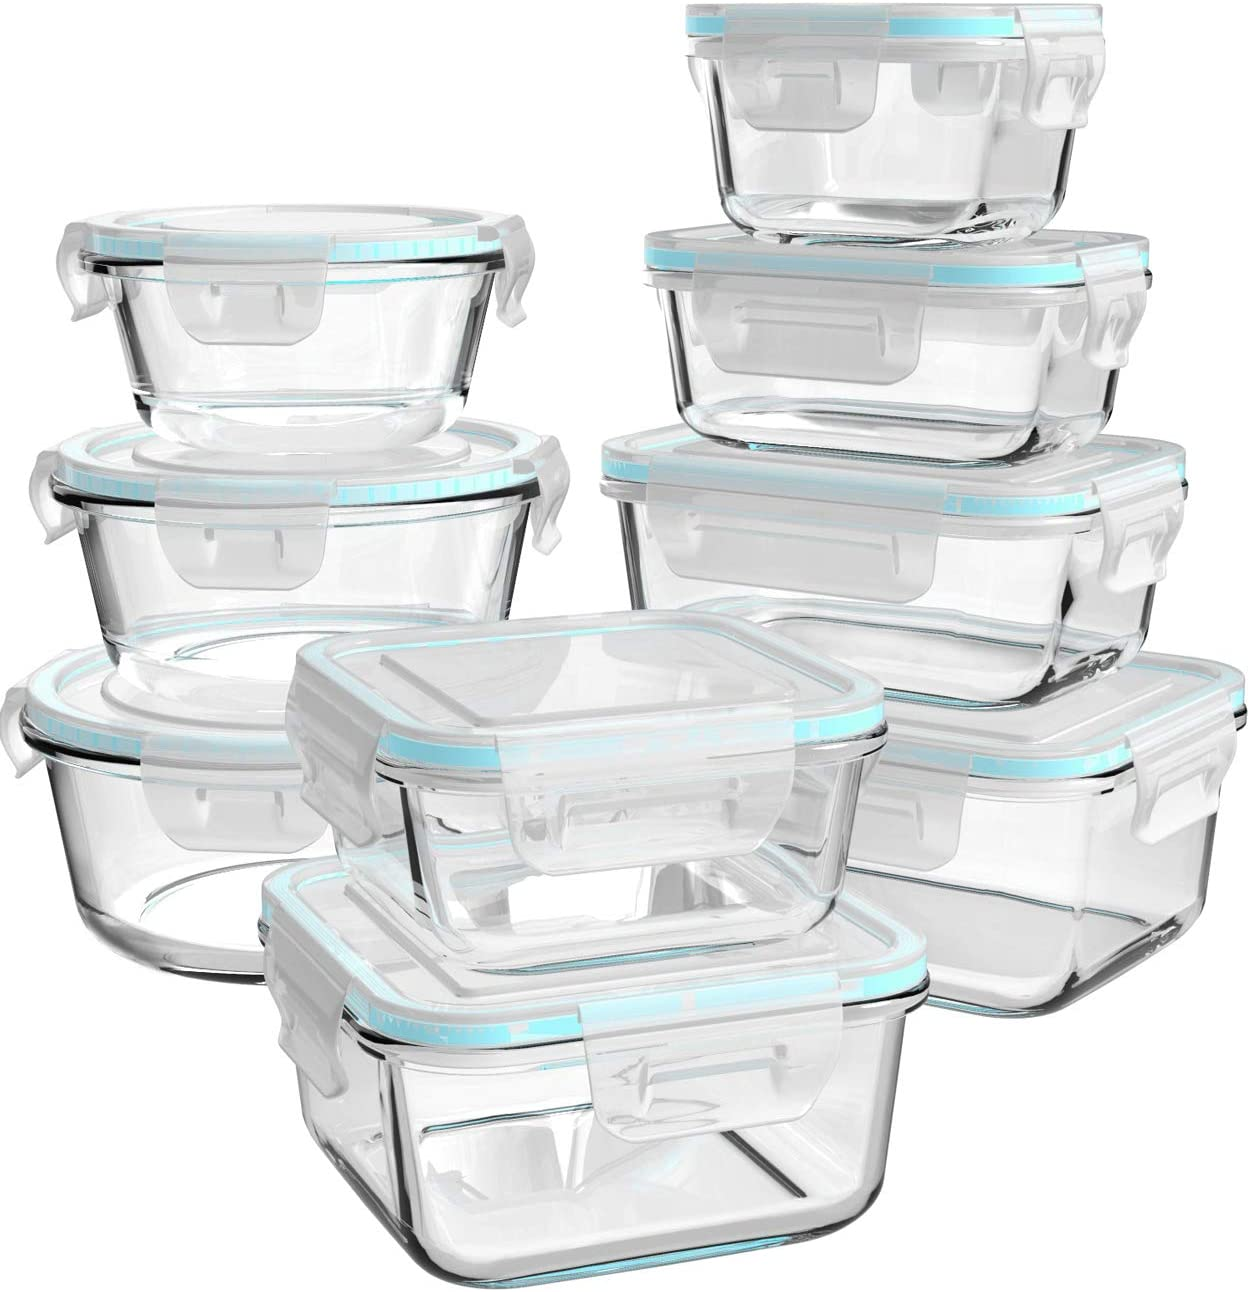 Glass Food Storage Containers with Lids, [18 Piece] Glass Meal Prep Containers, Glass Containers for Food Storage with Lids, BPA Free & FDA Approved & Leak Proof (9 Lids & 9 Containers)